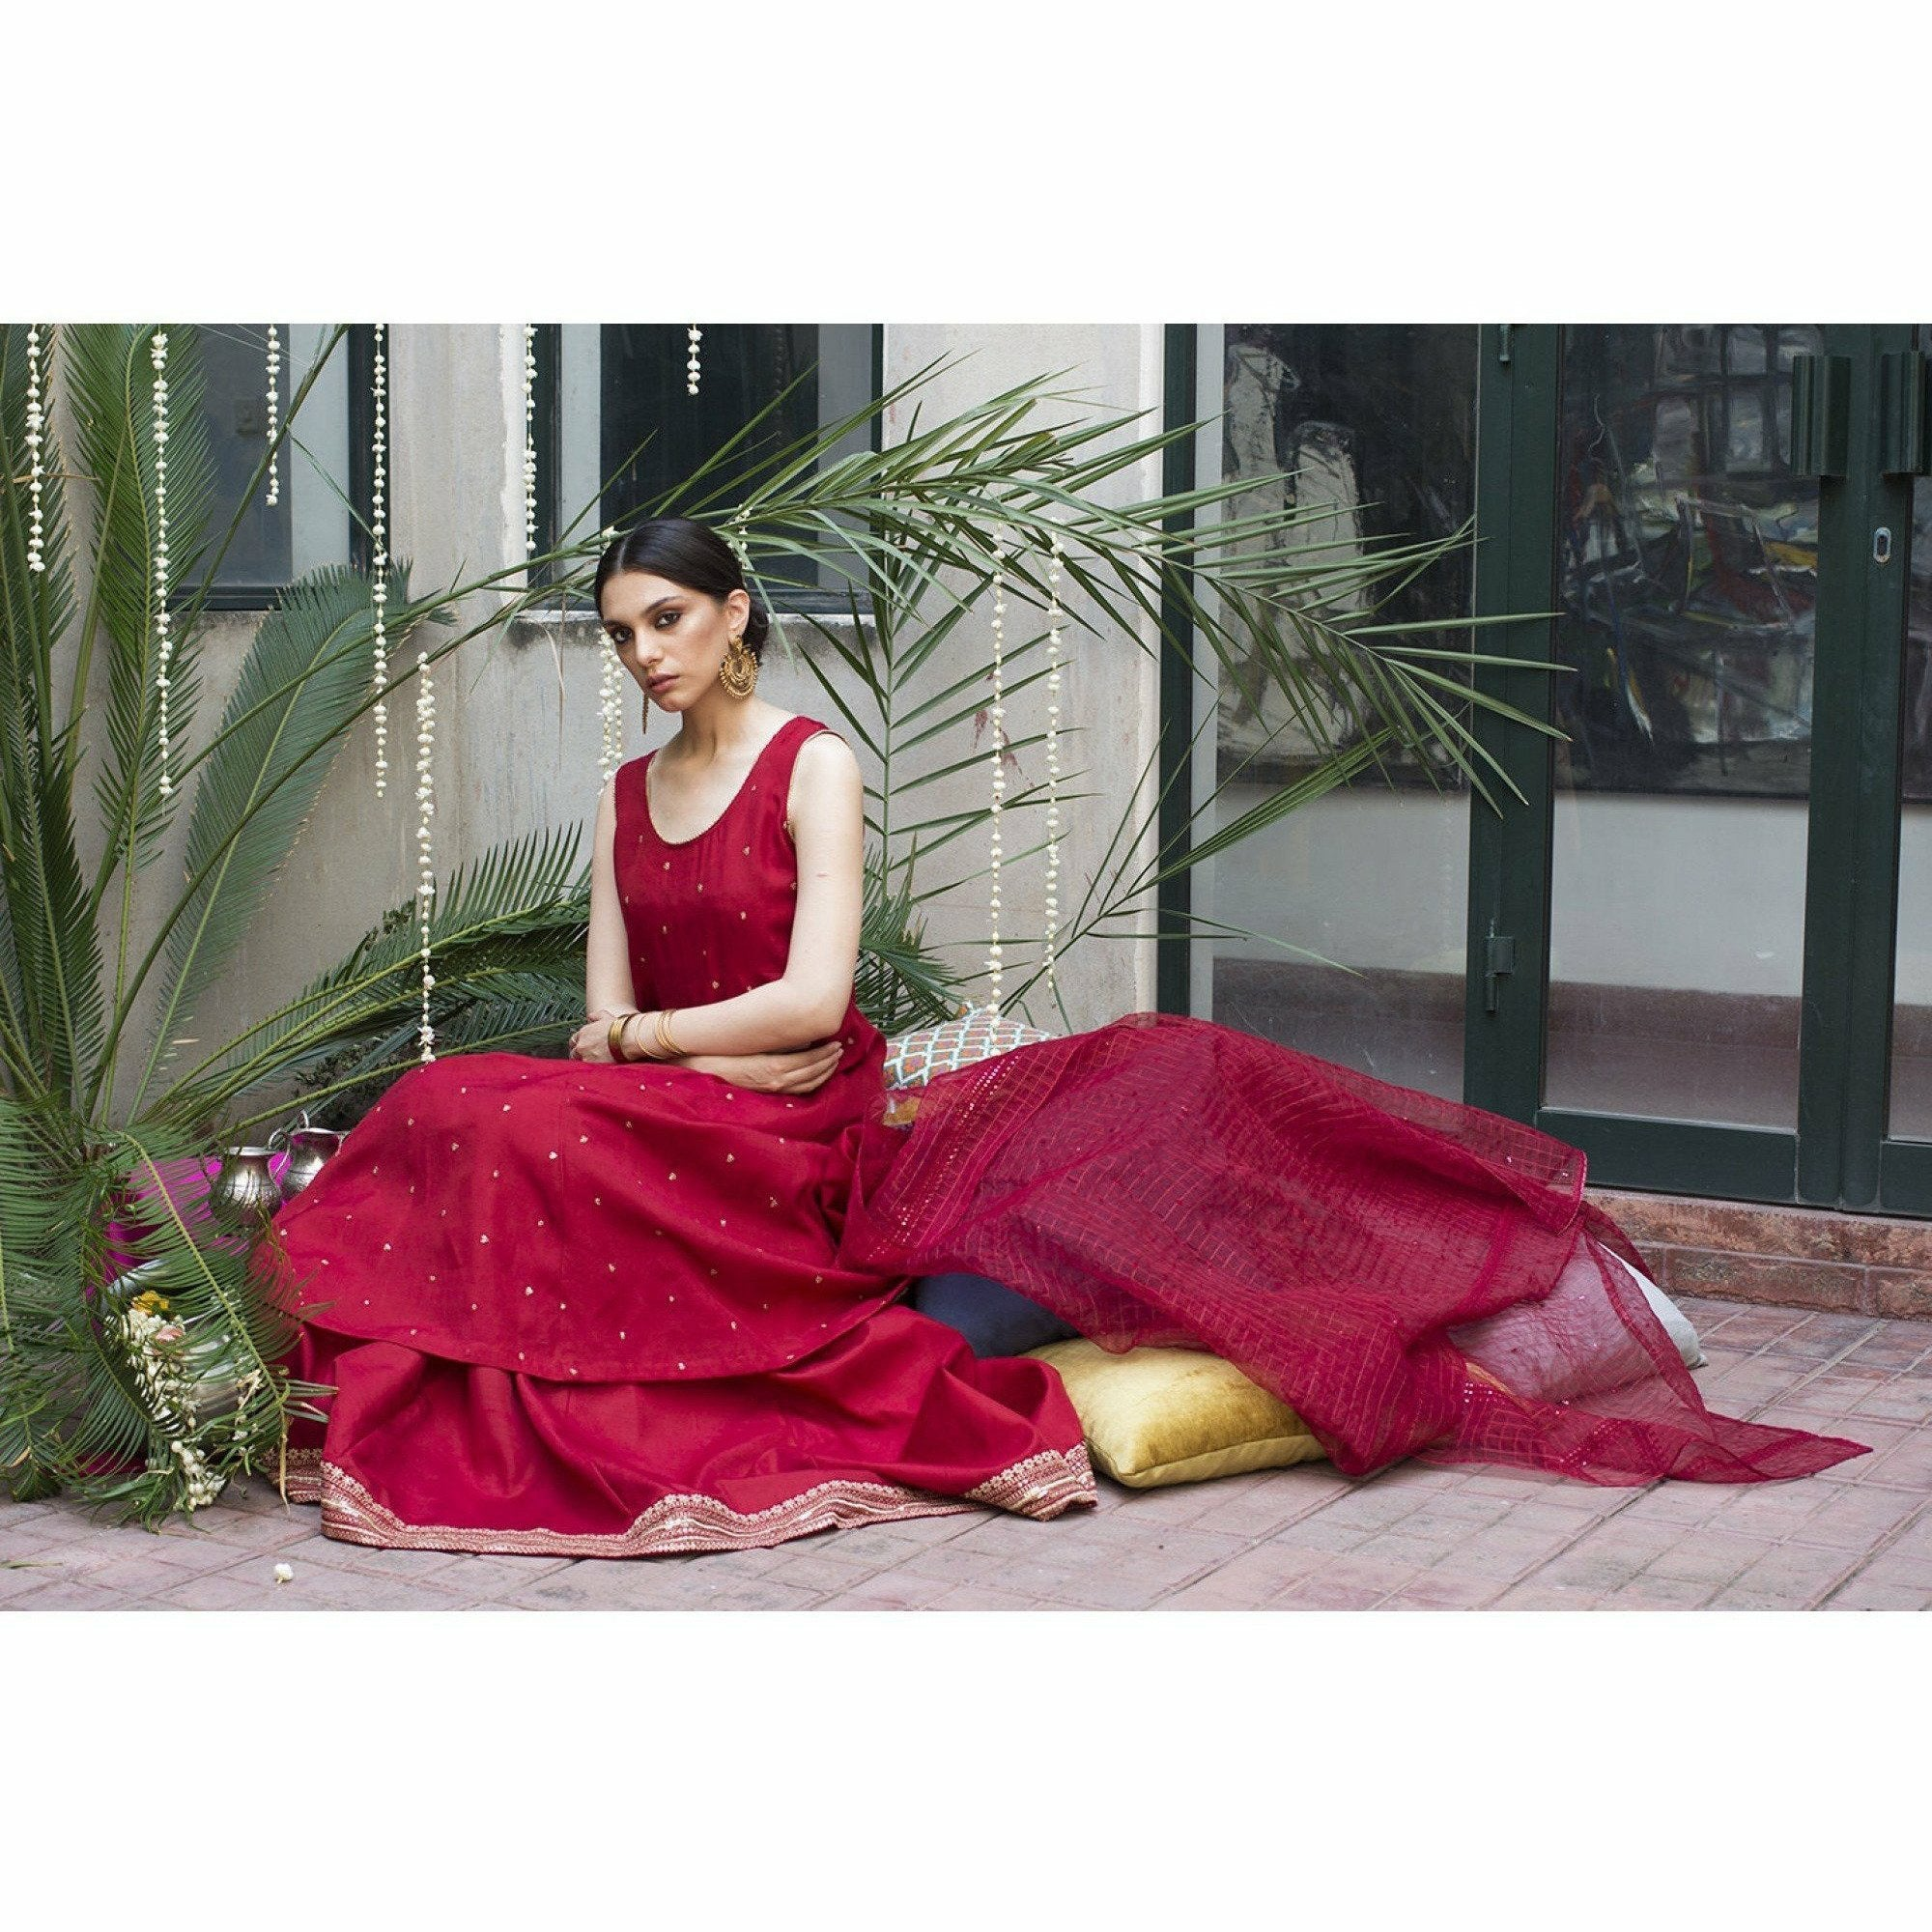 DYOT Resham - Red Outfit